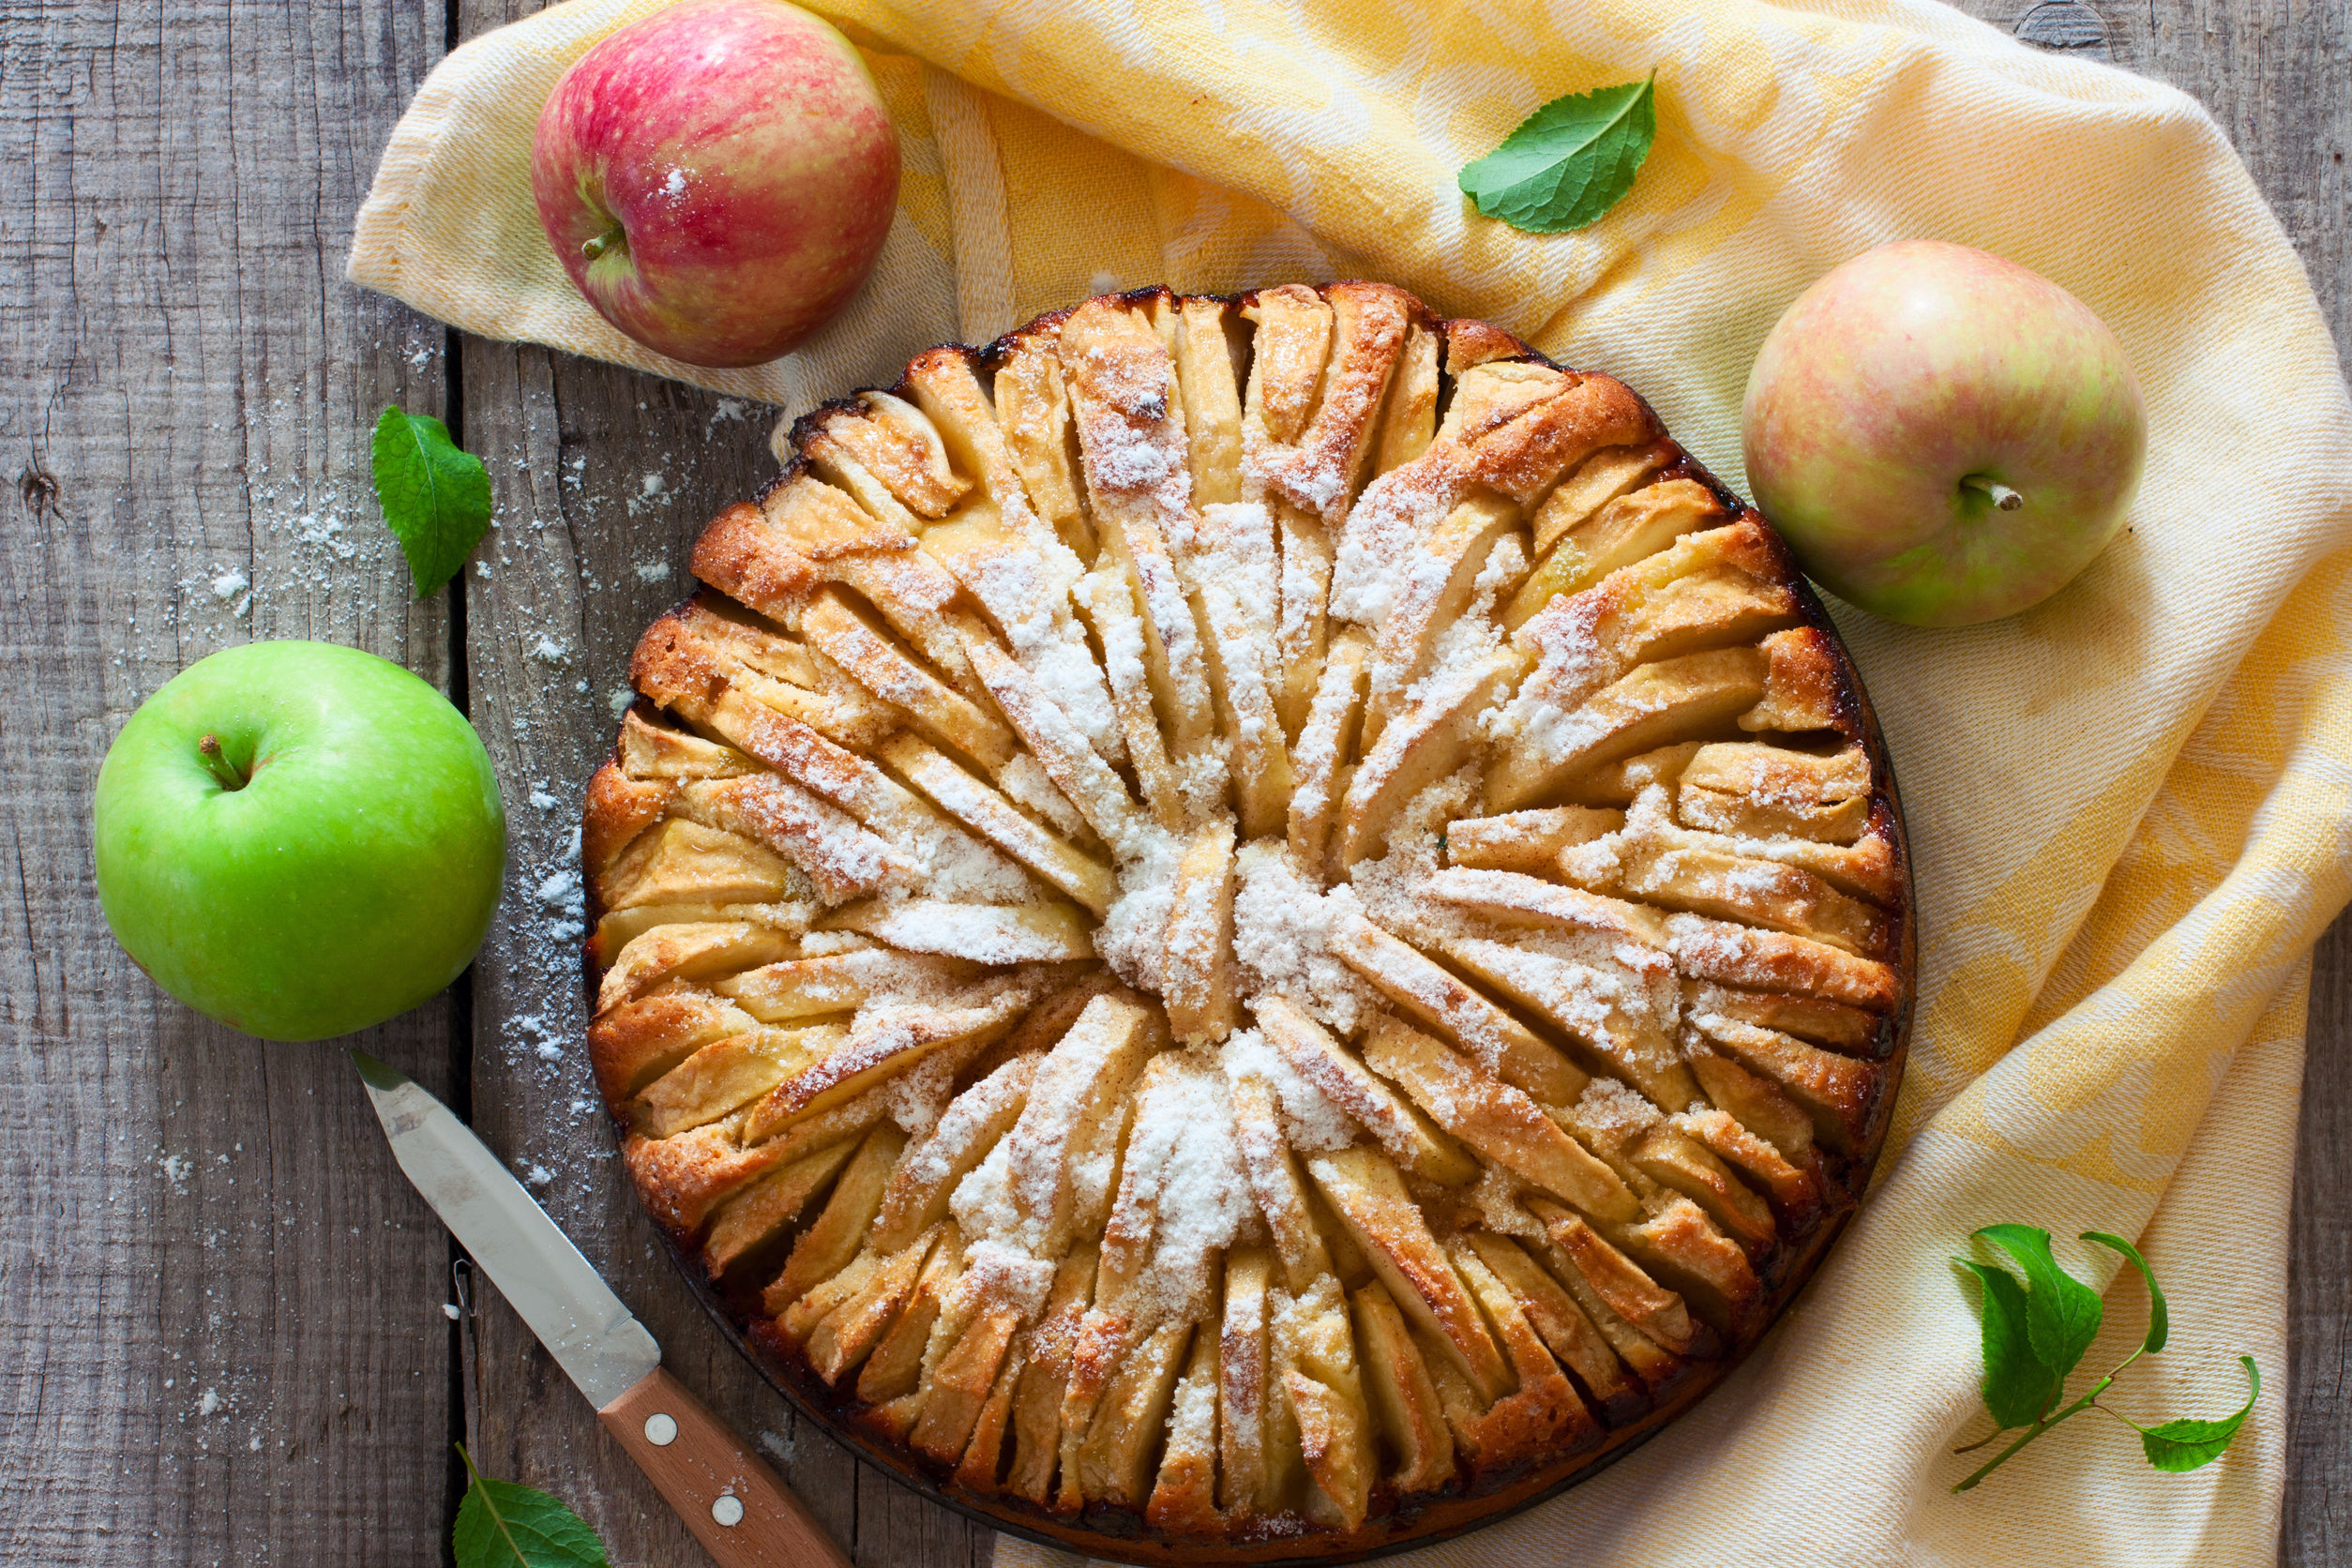 43607642 - fresh baked apple pie on the natural wood background